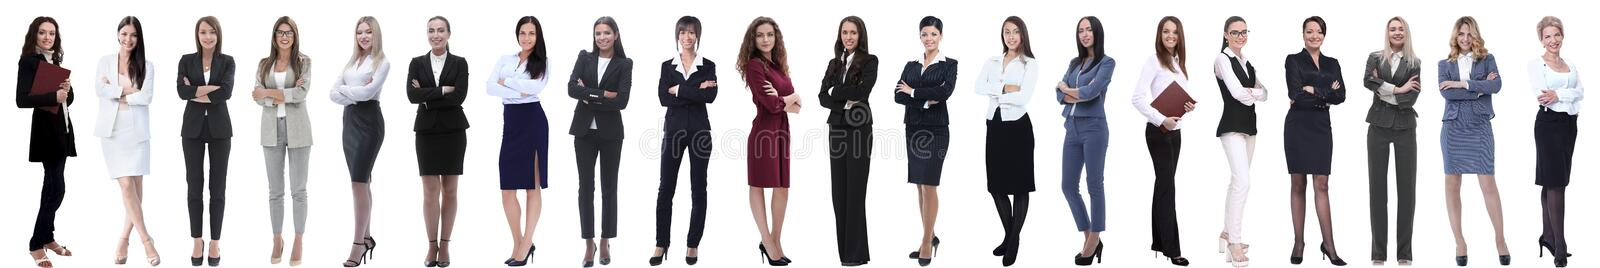 Group of successful young businesswoman standing in a row. Isolated on white background royalty free stock photo